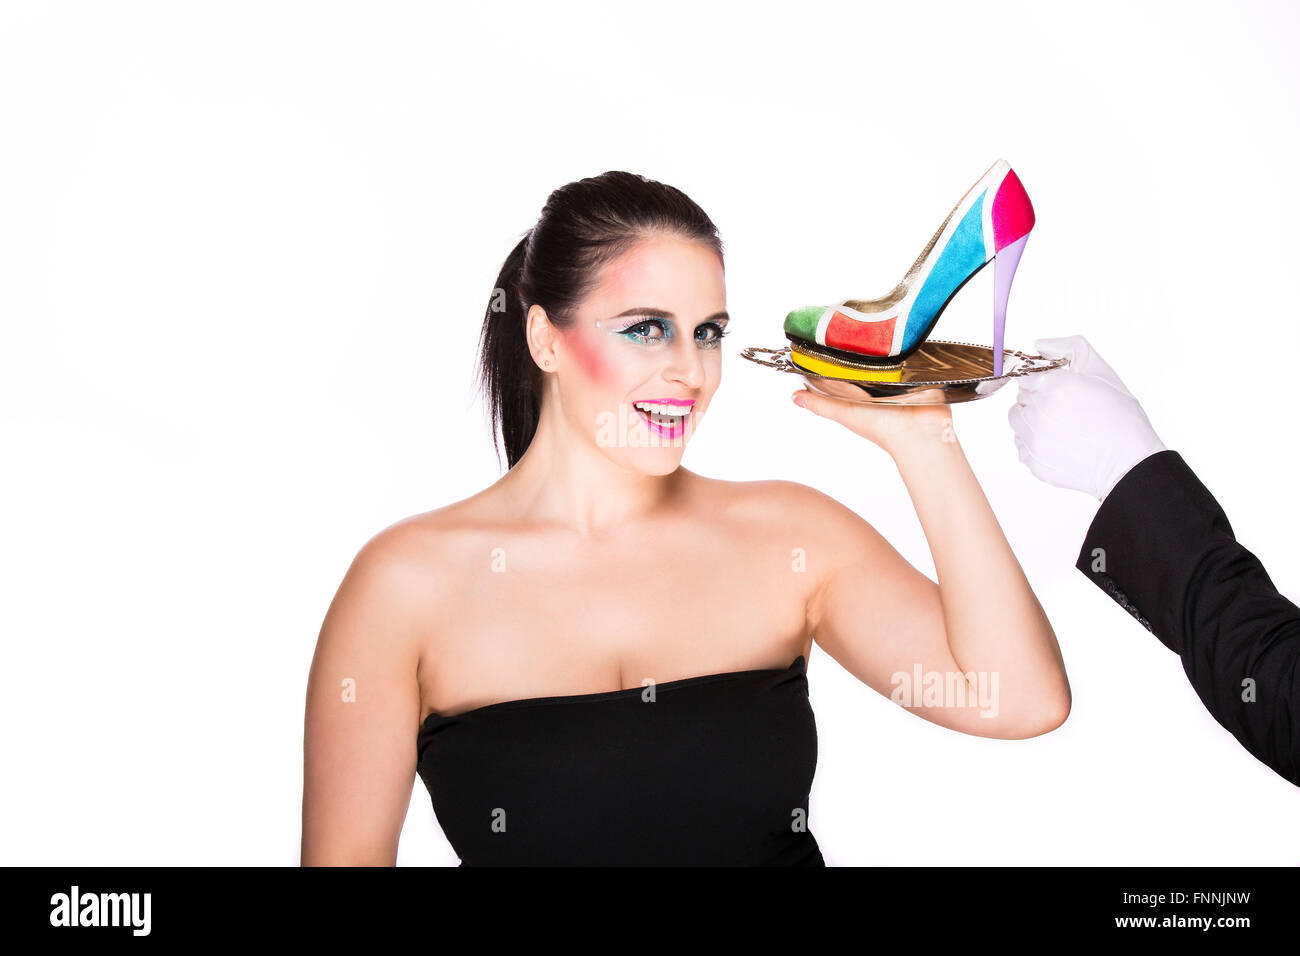 Smiling brunette holding a very colorful stiletto shoe on a silver platter being offered to her by a butler - Stock Image